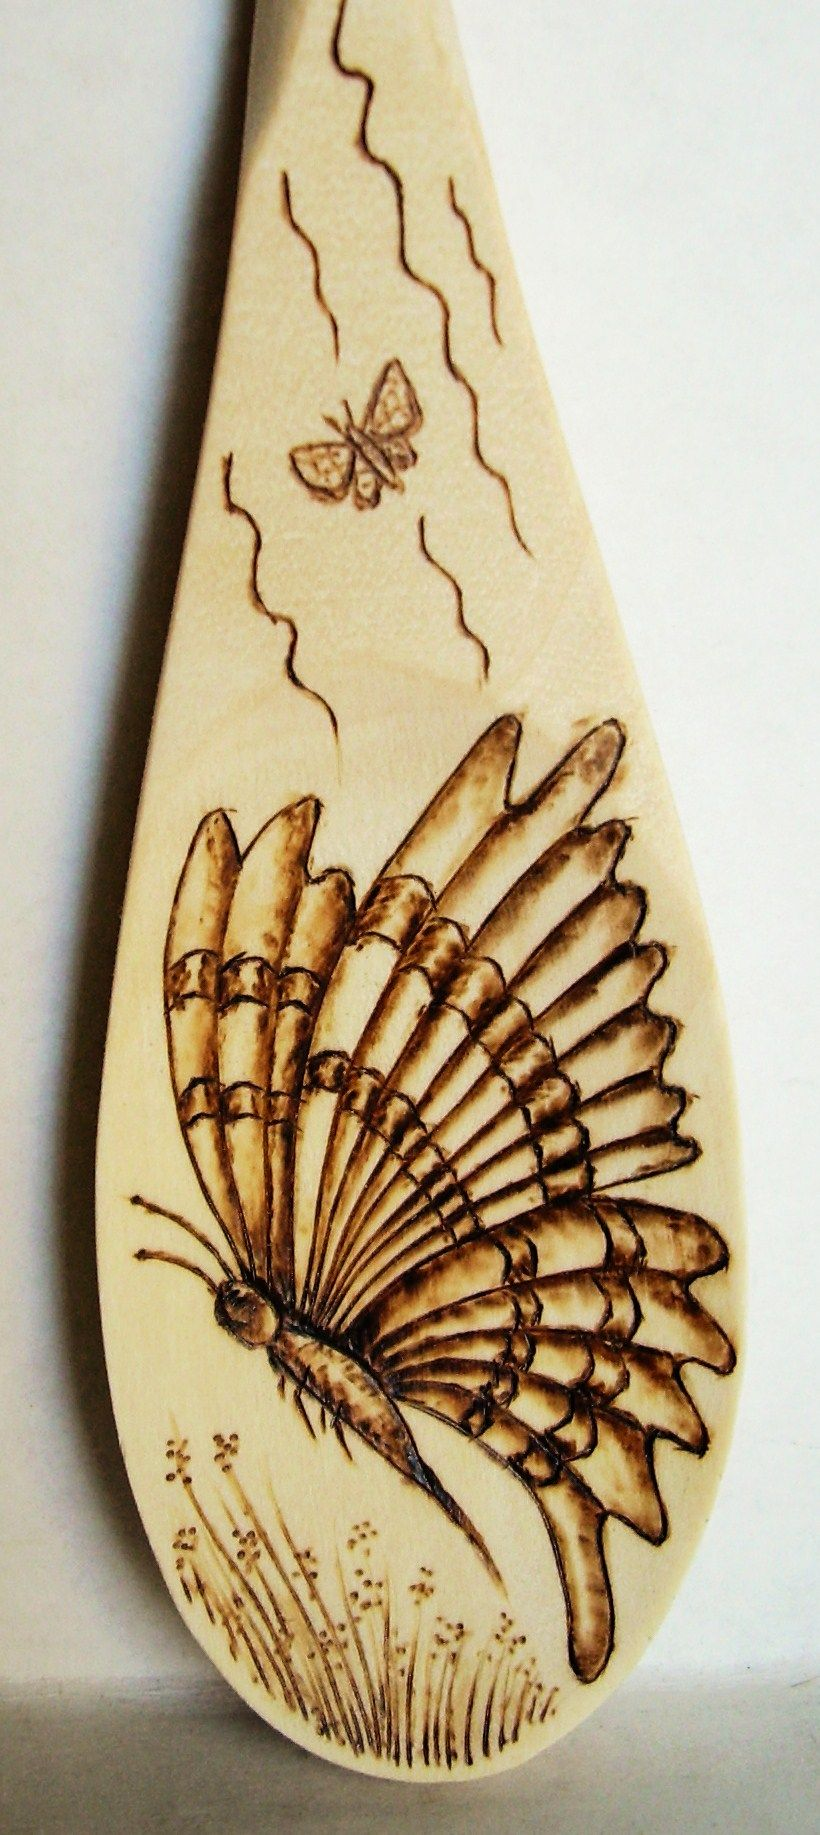 20 2009 Quot Butterfly Quot Side View In Flight Wood Burning